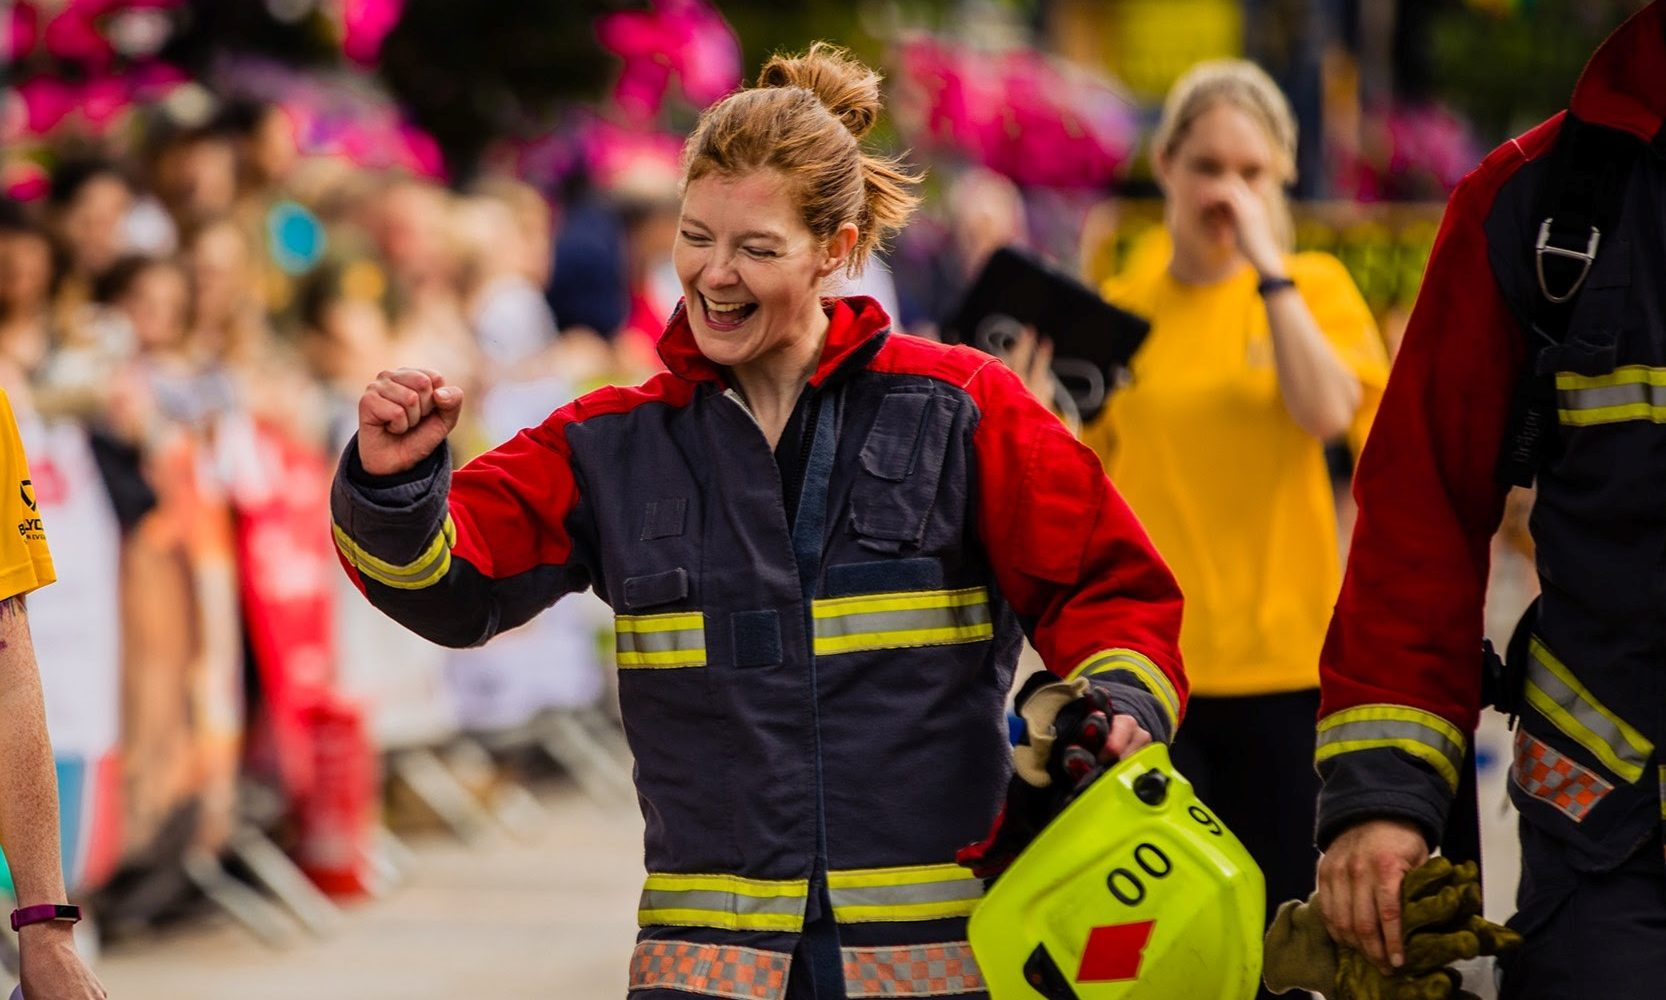 Firefighter, Bec Meachin is on a mission; to consistently better herself, mentally and physically, and to support those training to be Firefighters in doing the same.